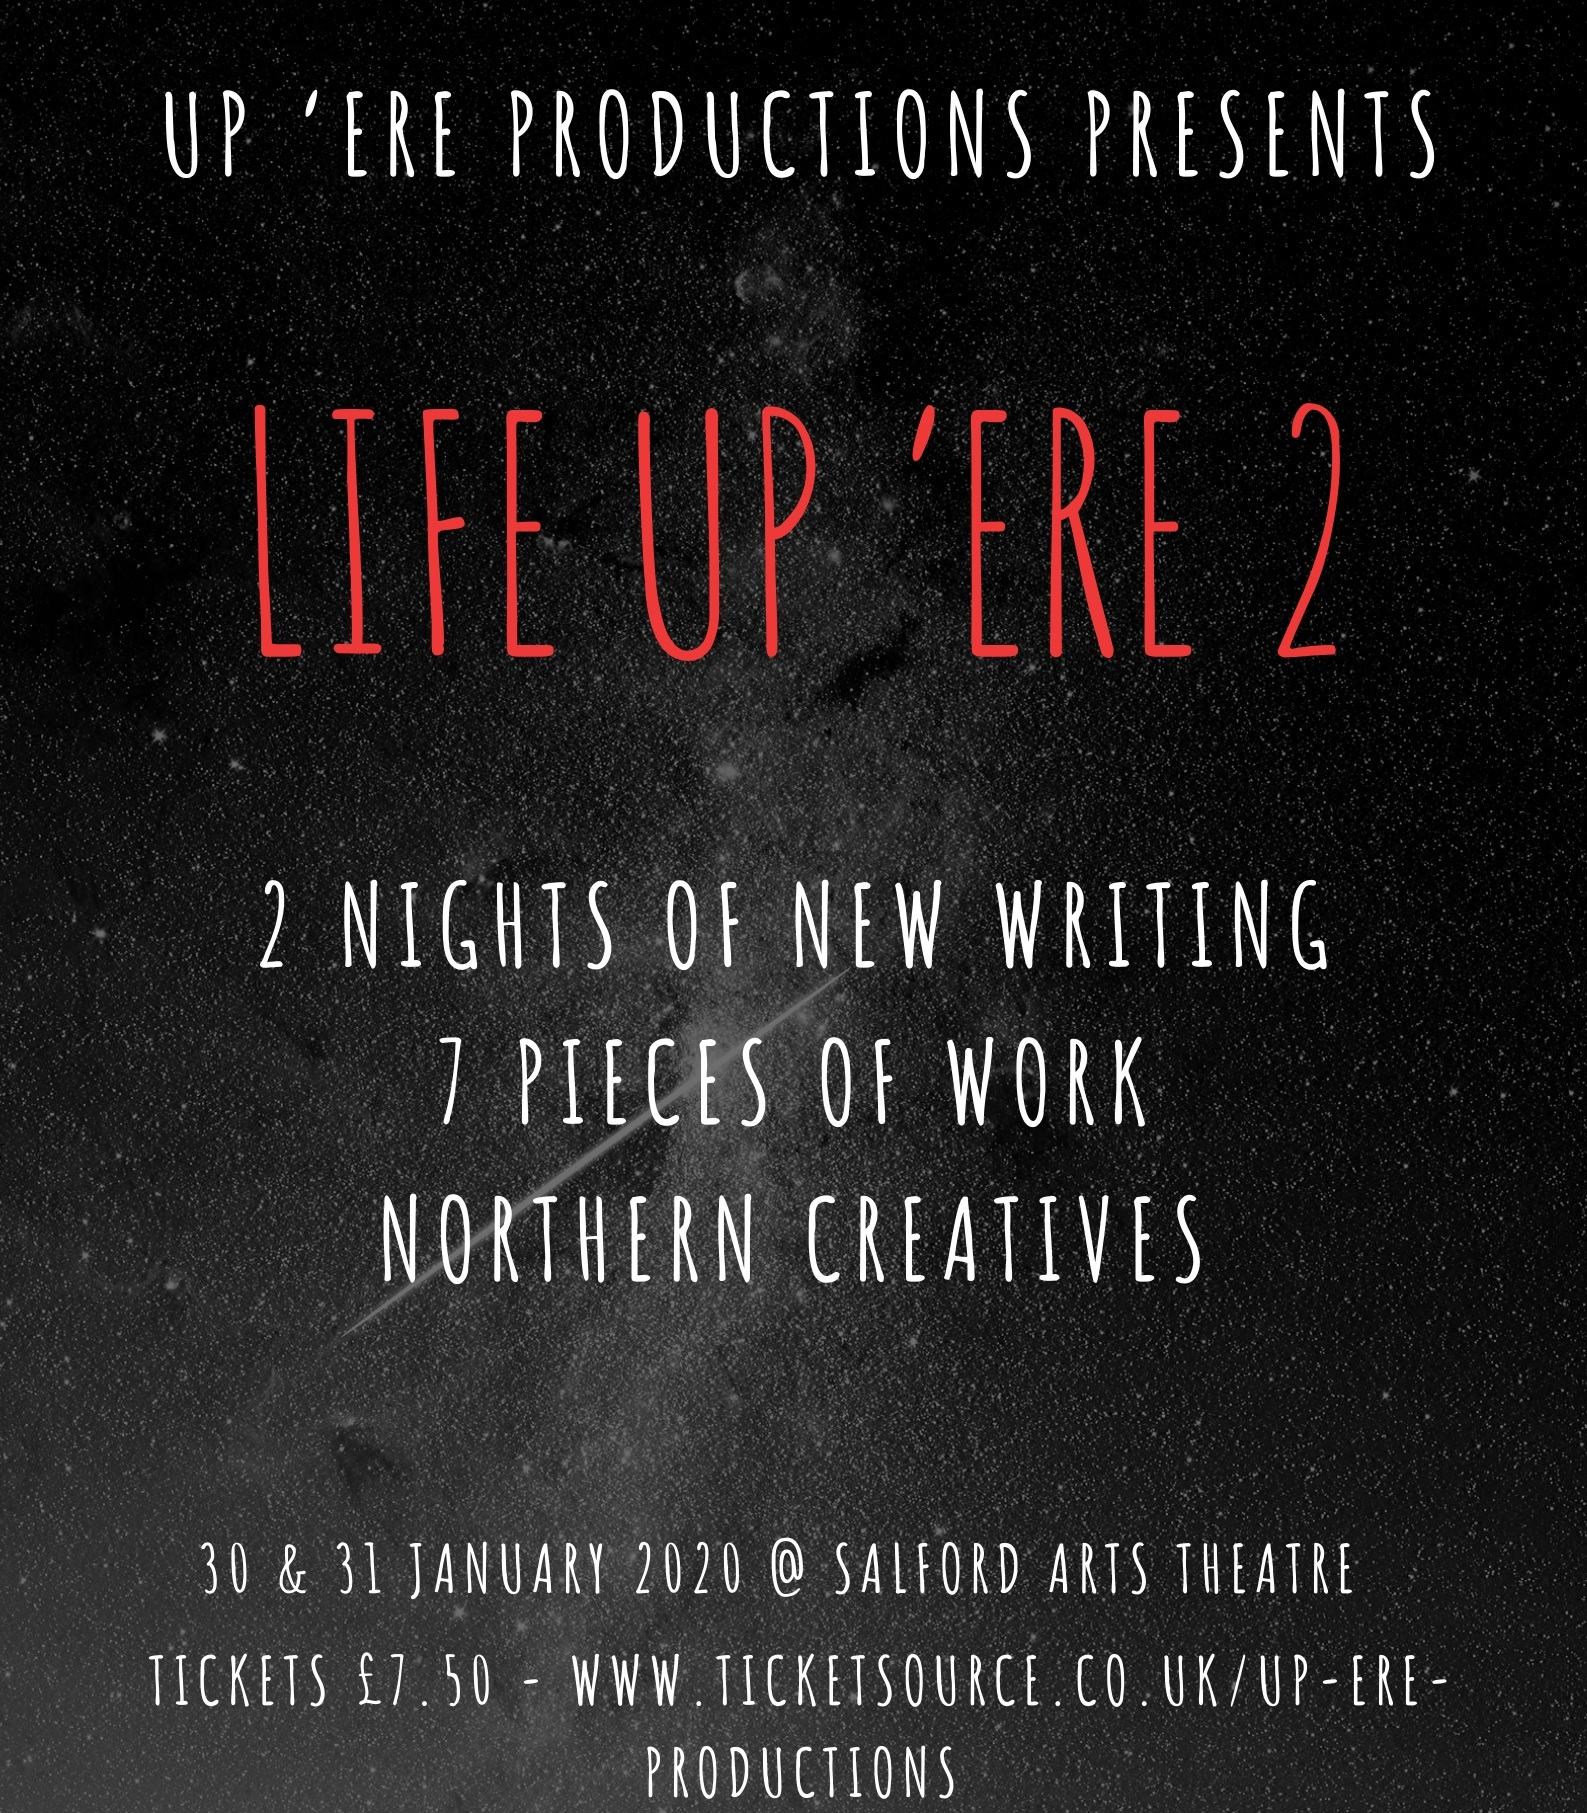 UP 'ERE PRODUCTIONS  - Performing at Salford Arts Theatre